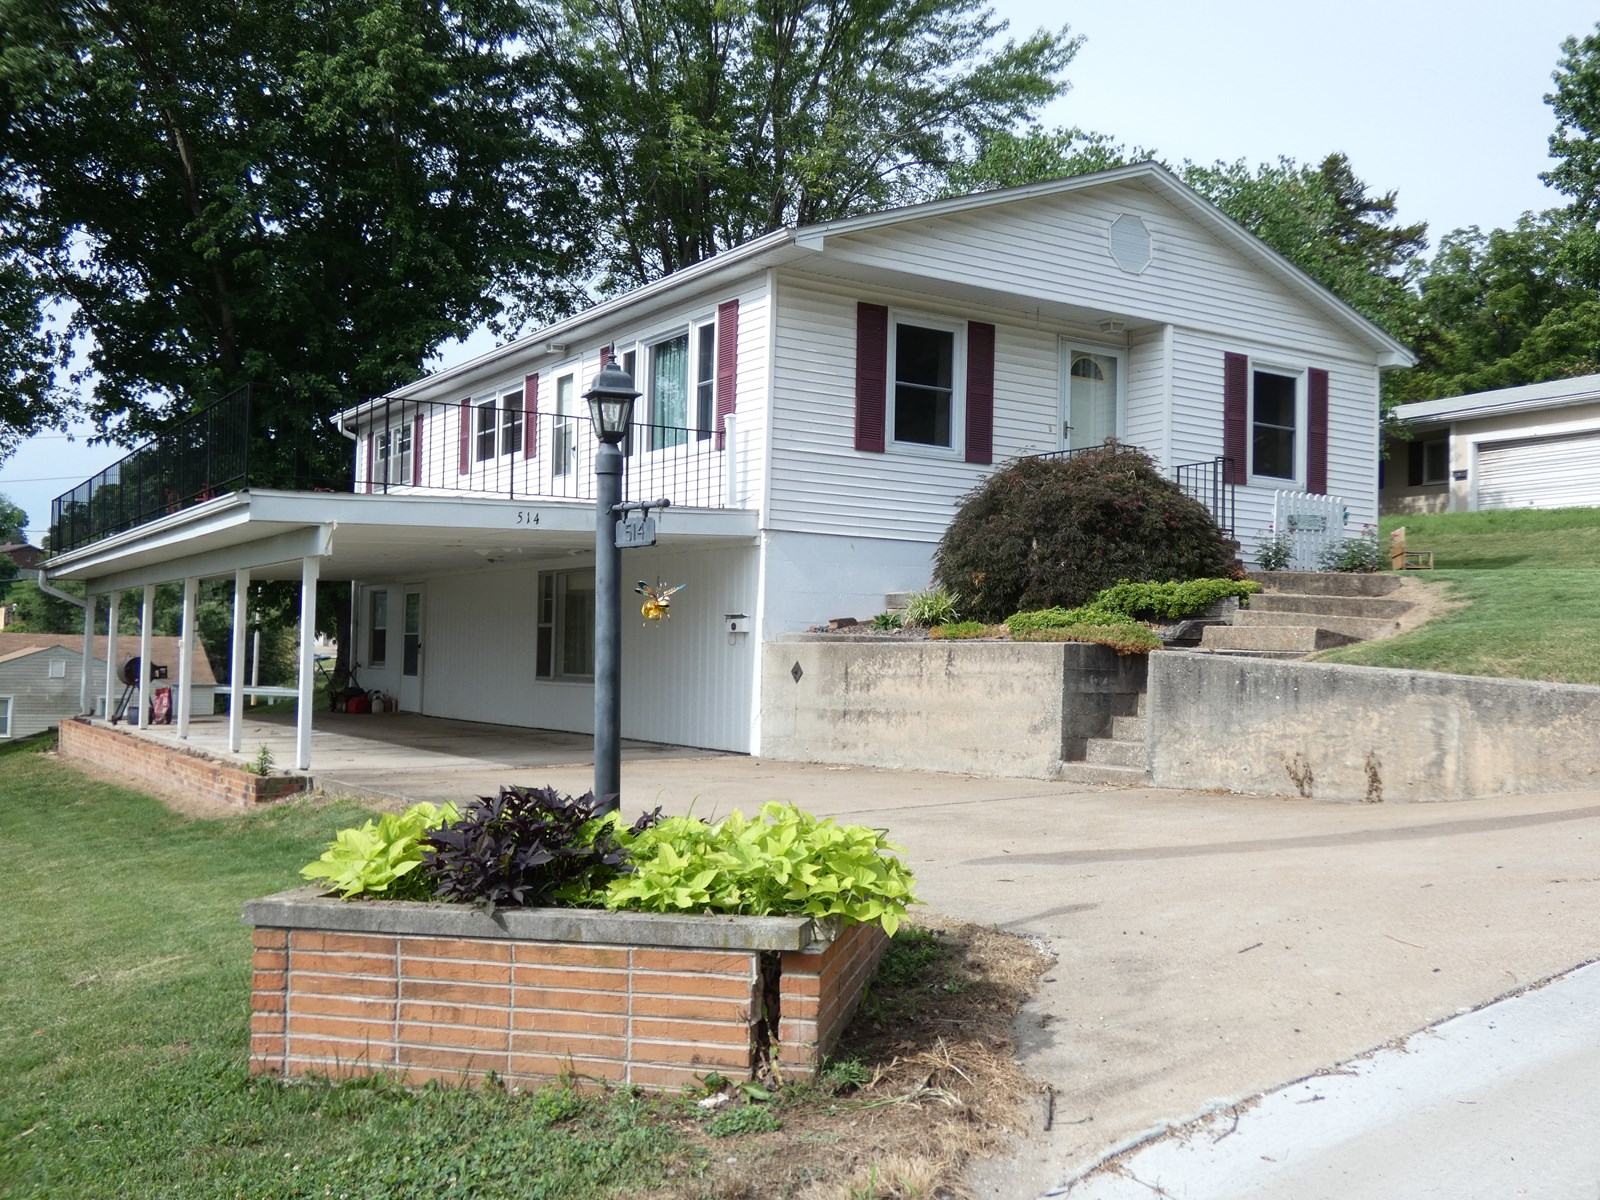 Home For Sale in Hermann, Missouri